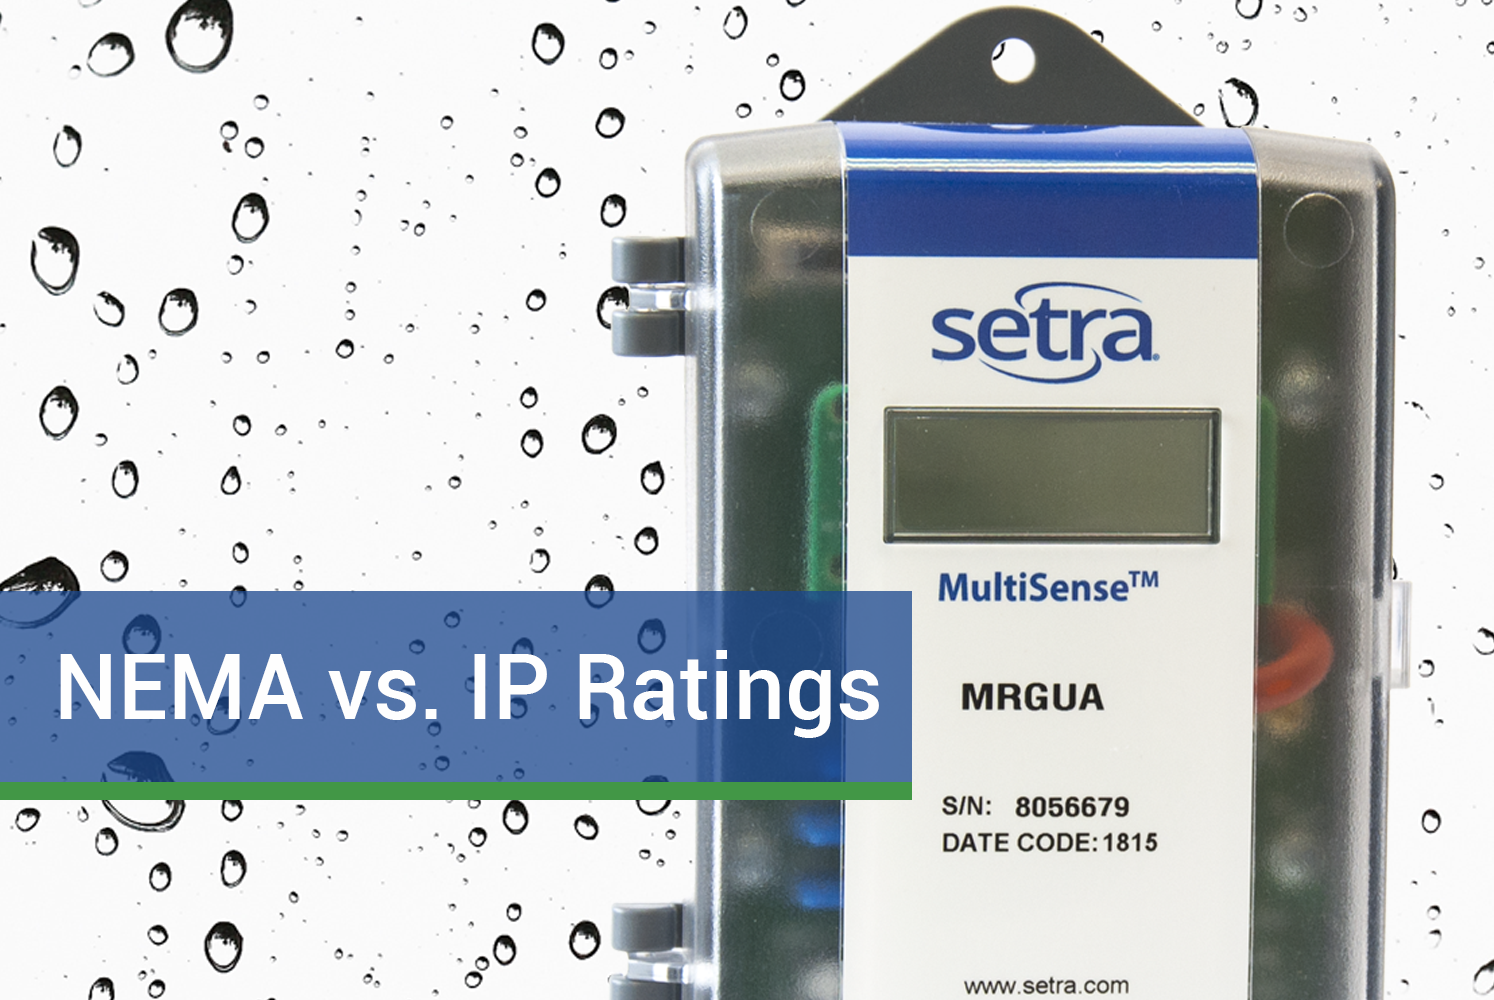 What Is The Difference Between Nema And Ip Ratings